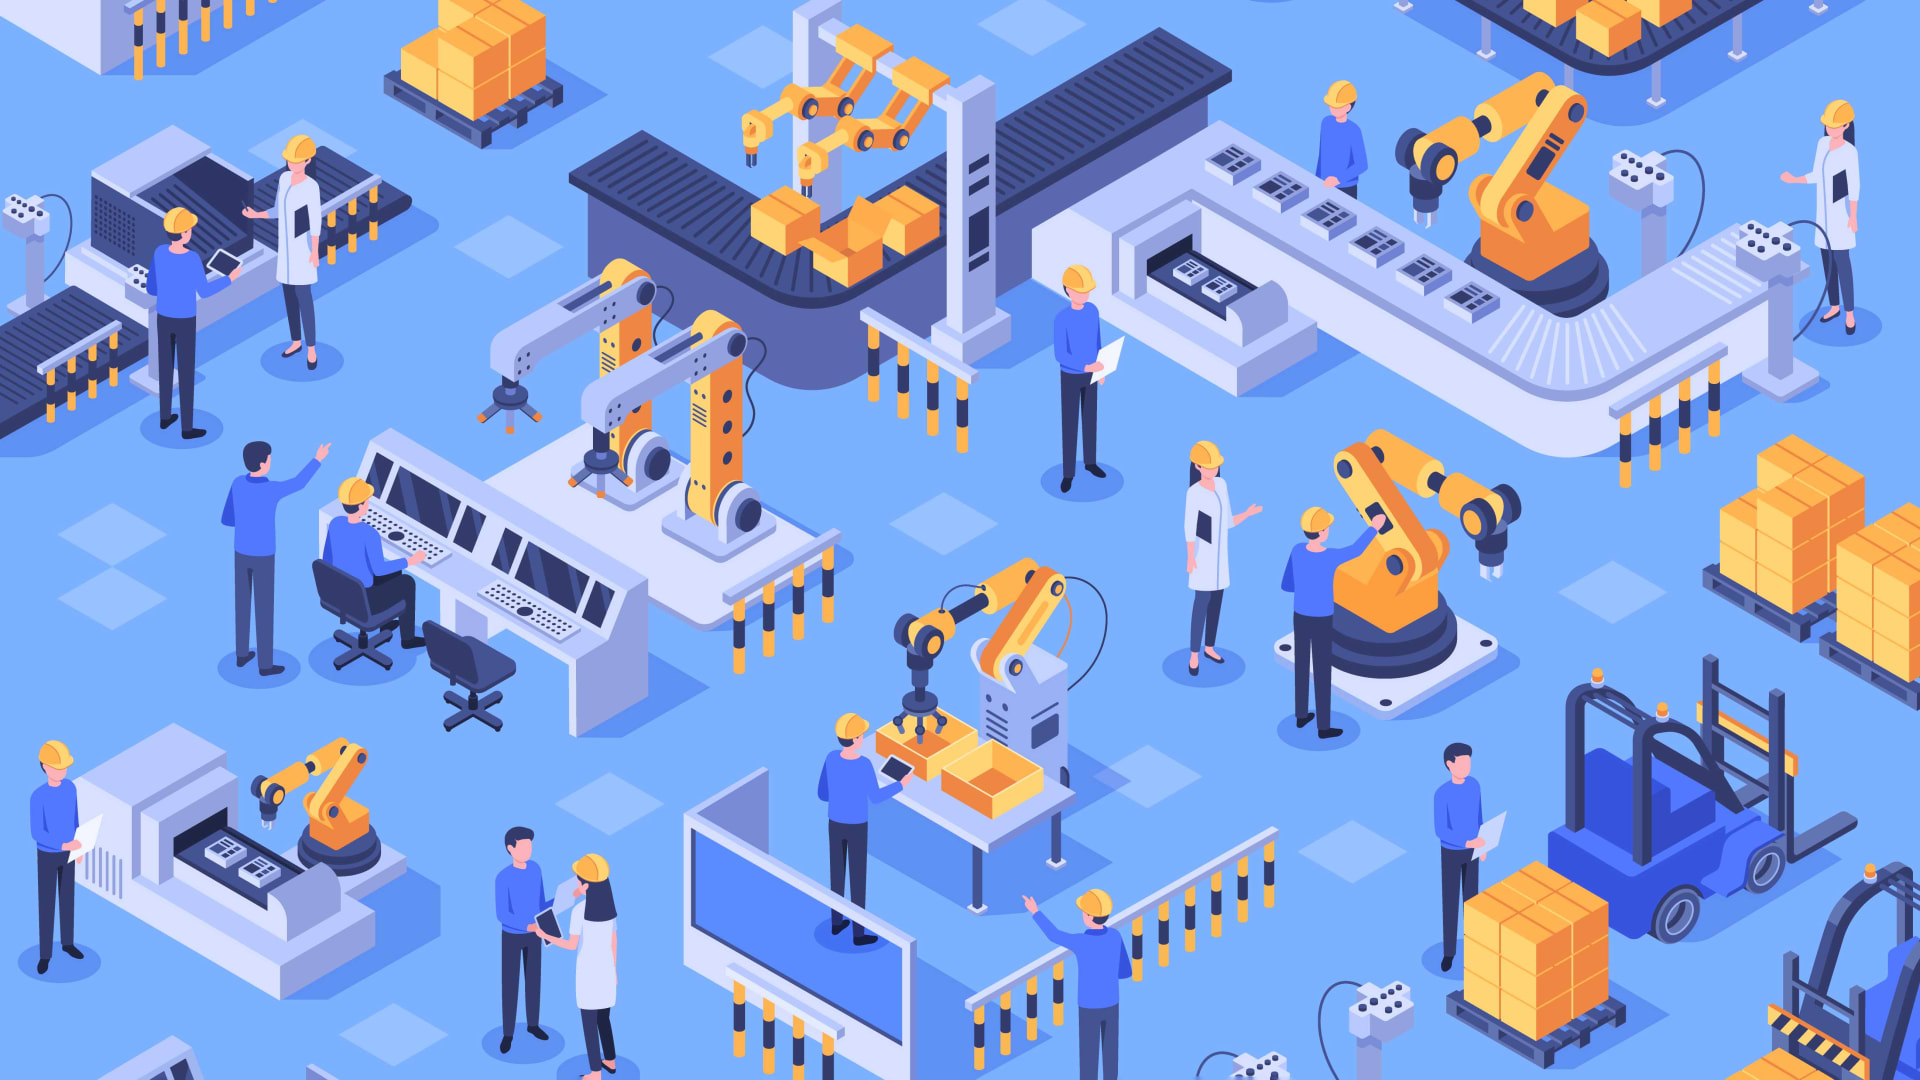 3 Ways Automation Technology Is Helping Us Do Our Jobs Better